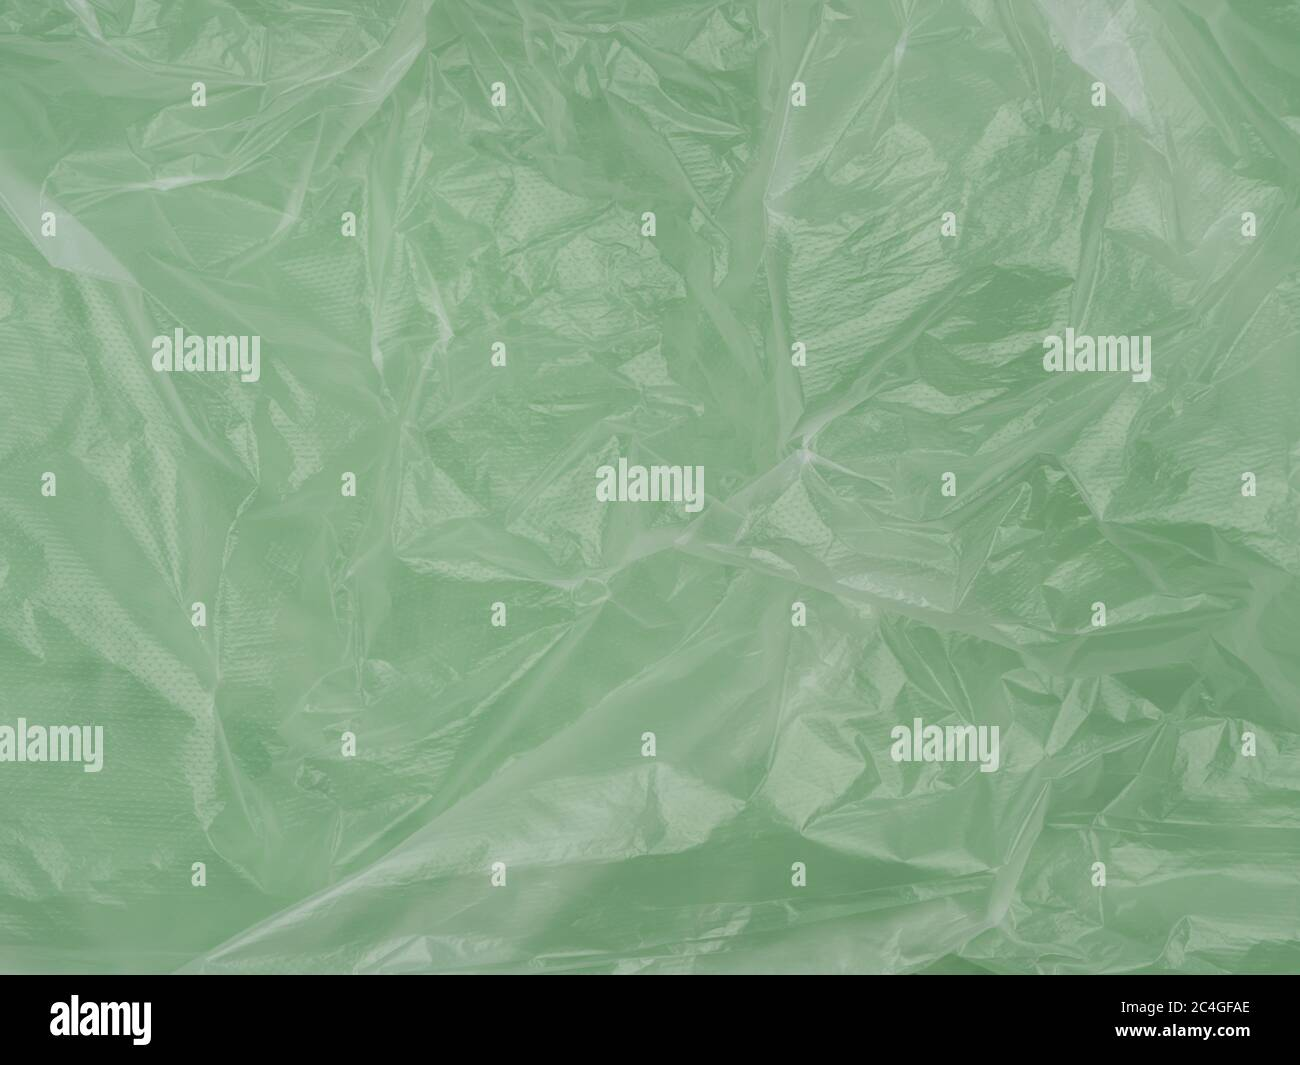 The texture of crumpled cellophane film. Abstract the image. Stock Photo